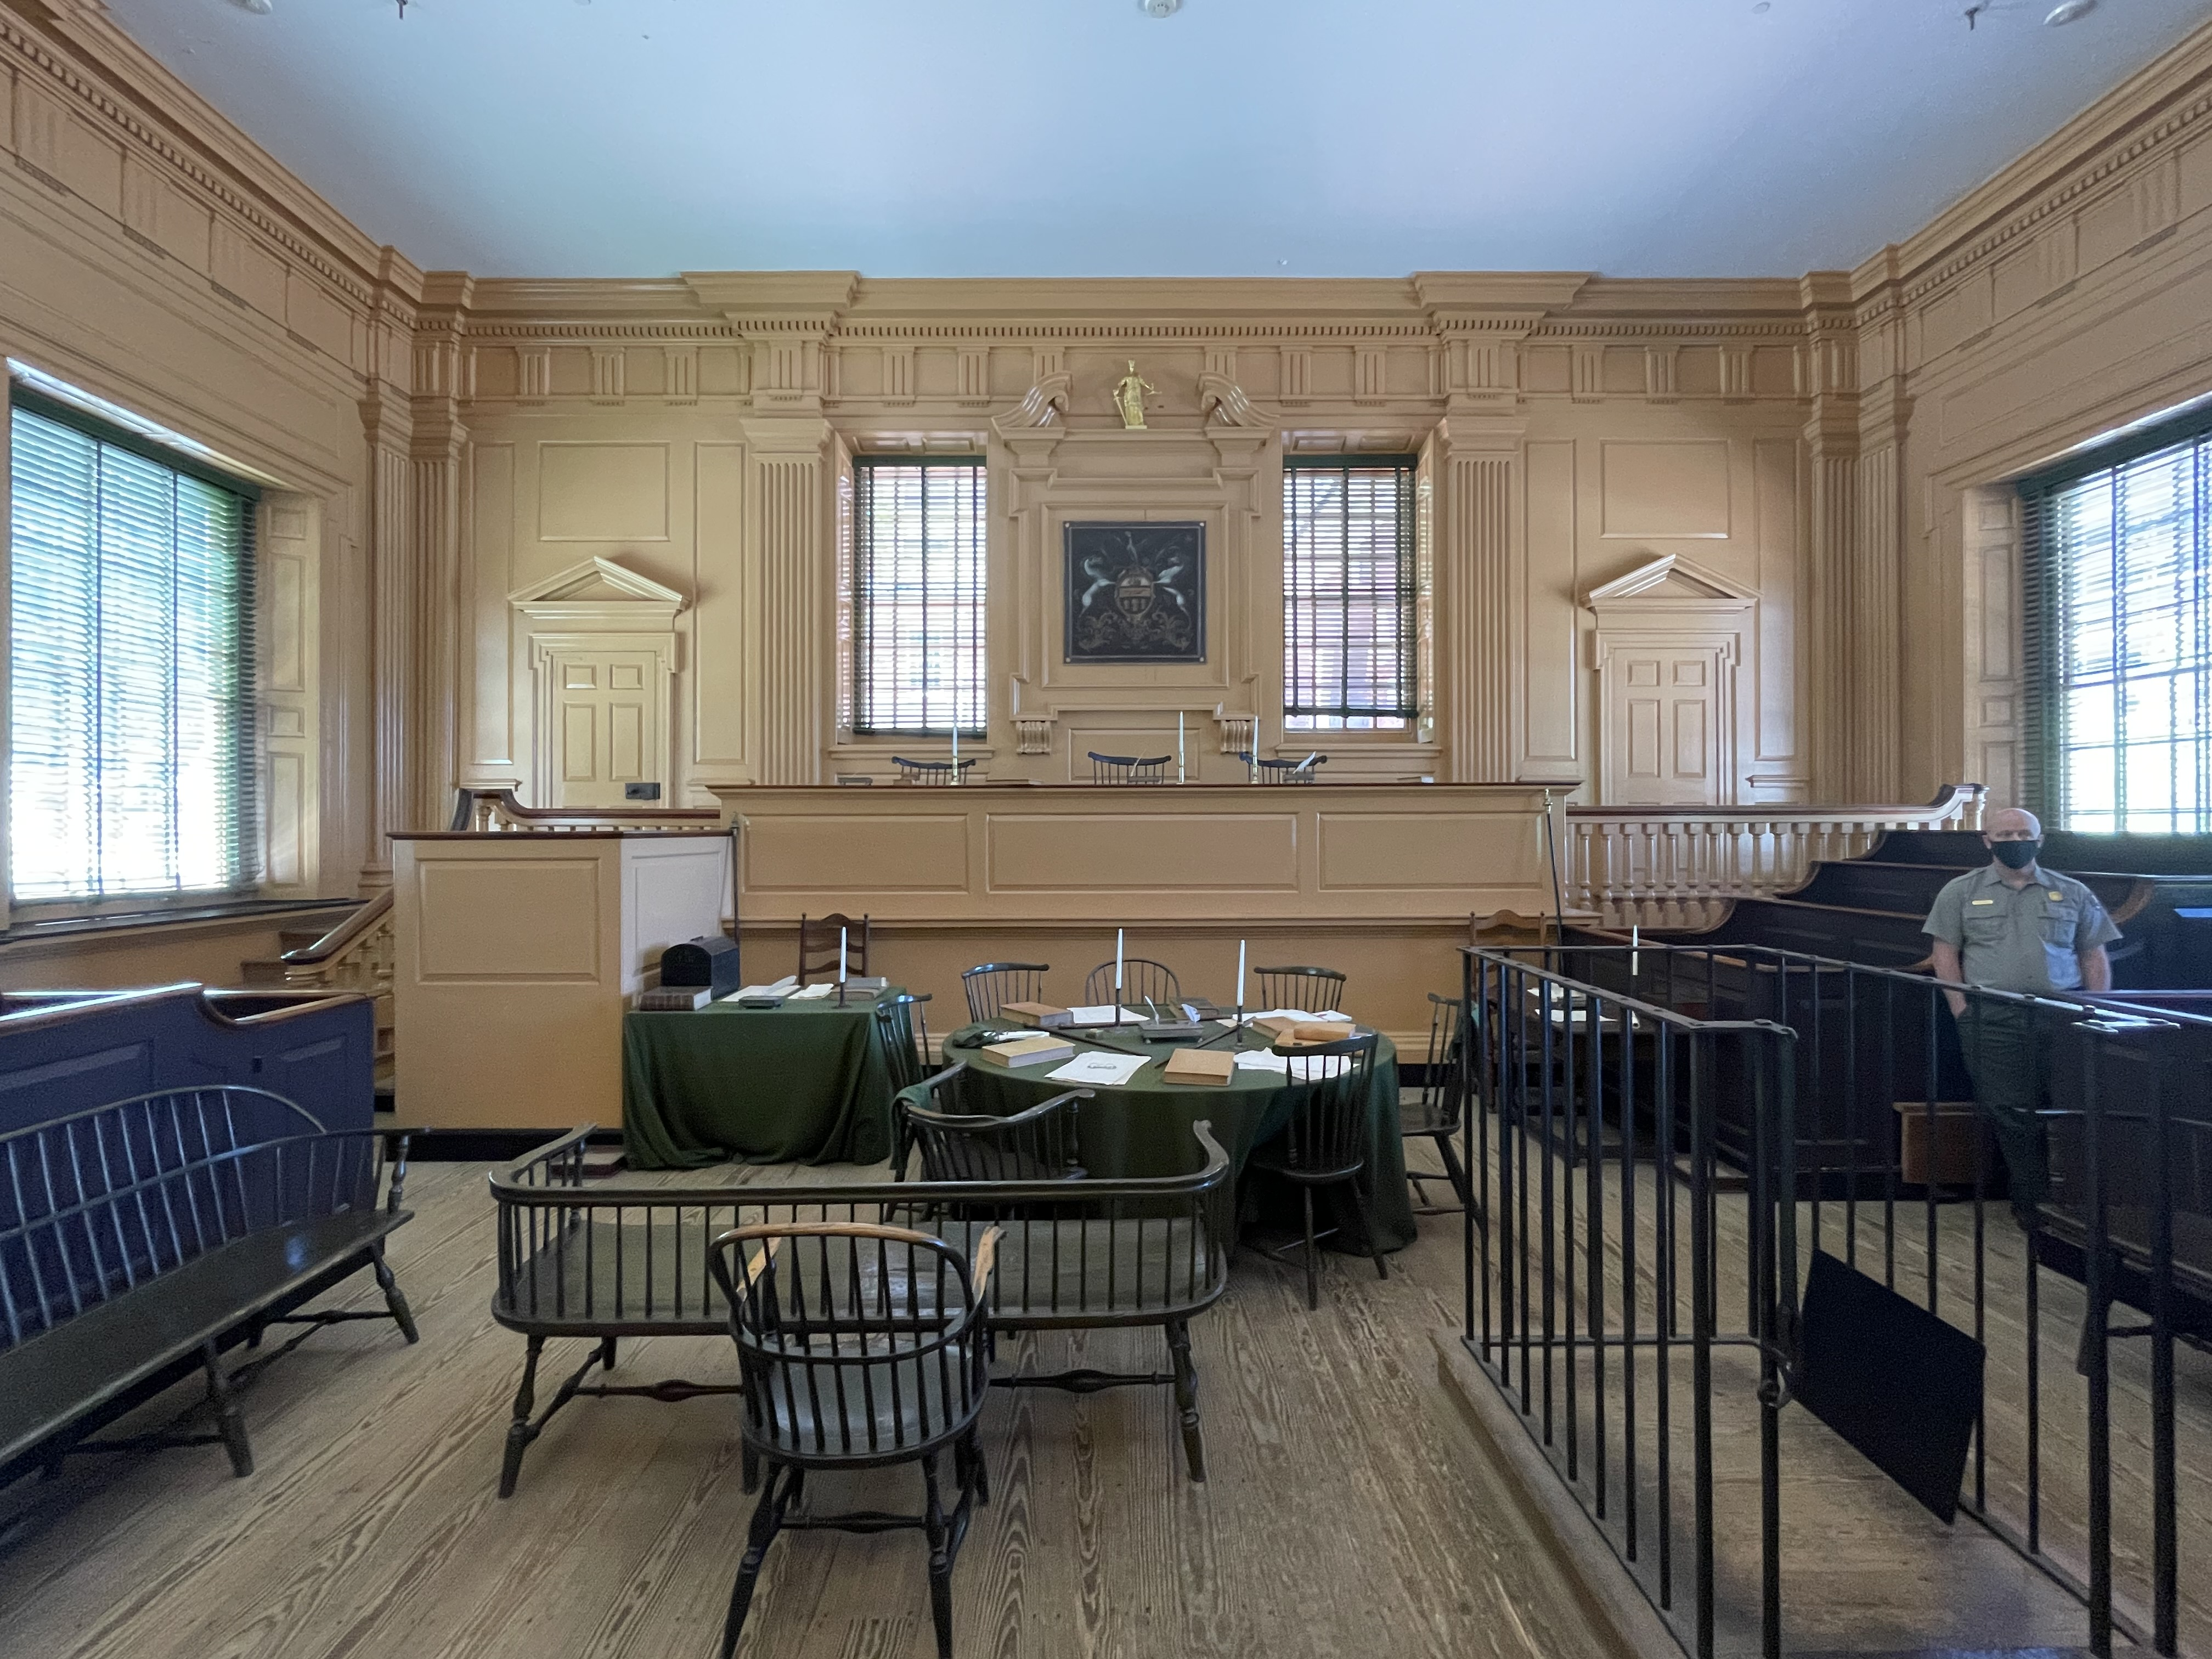 The Court House, Independence Hall, Philadelphia